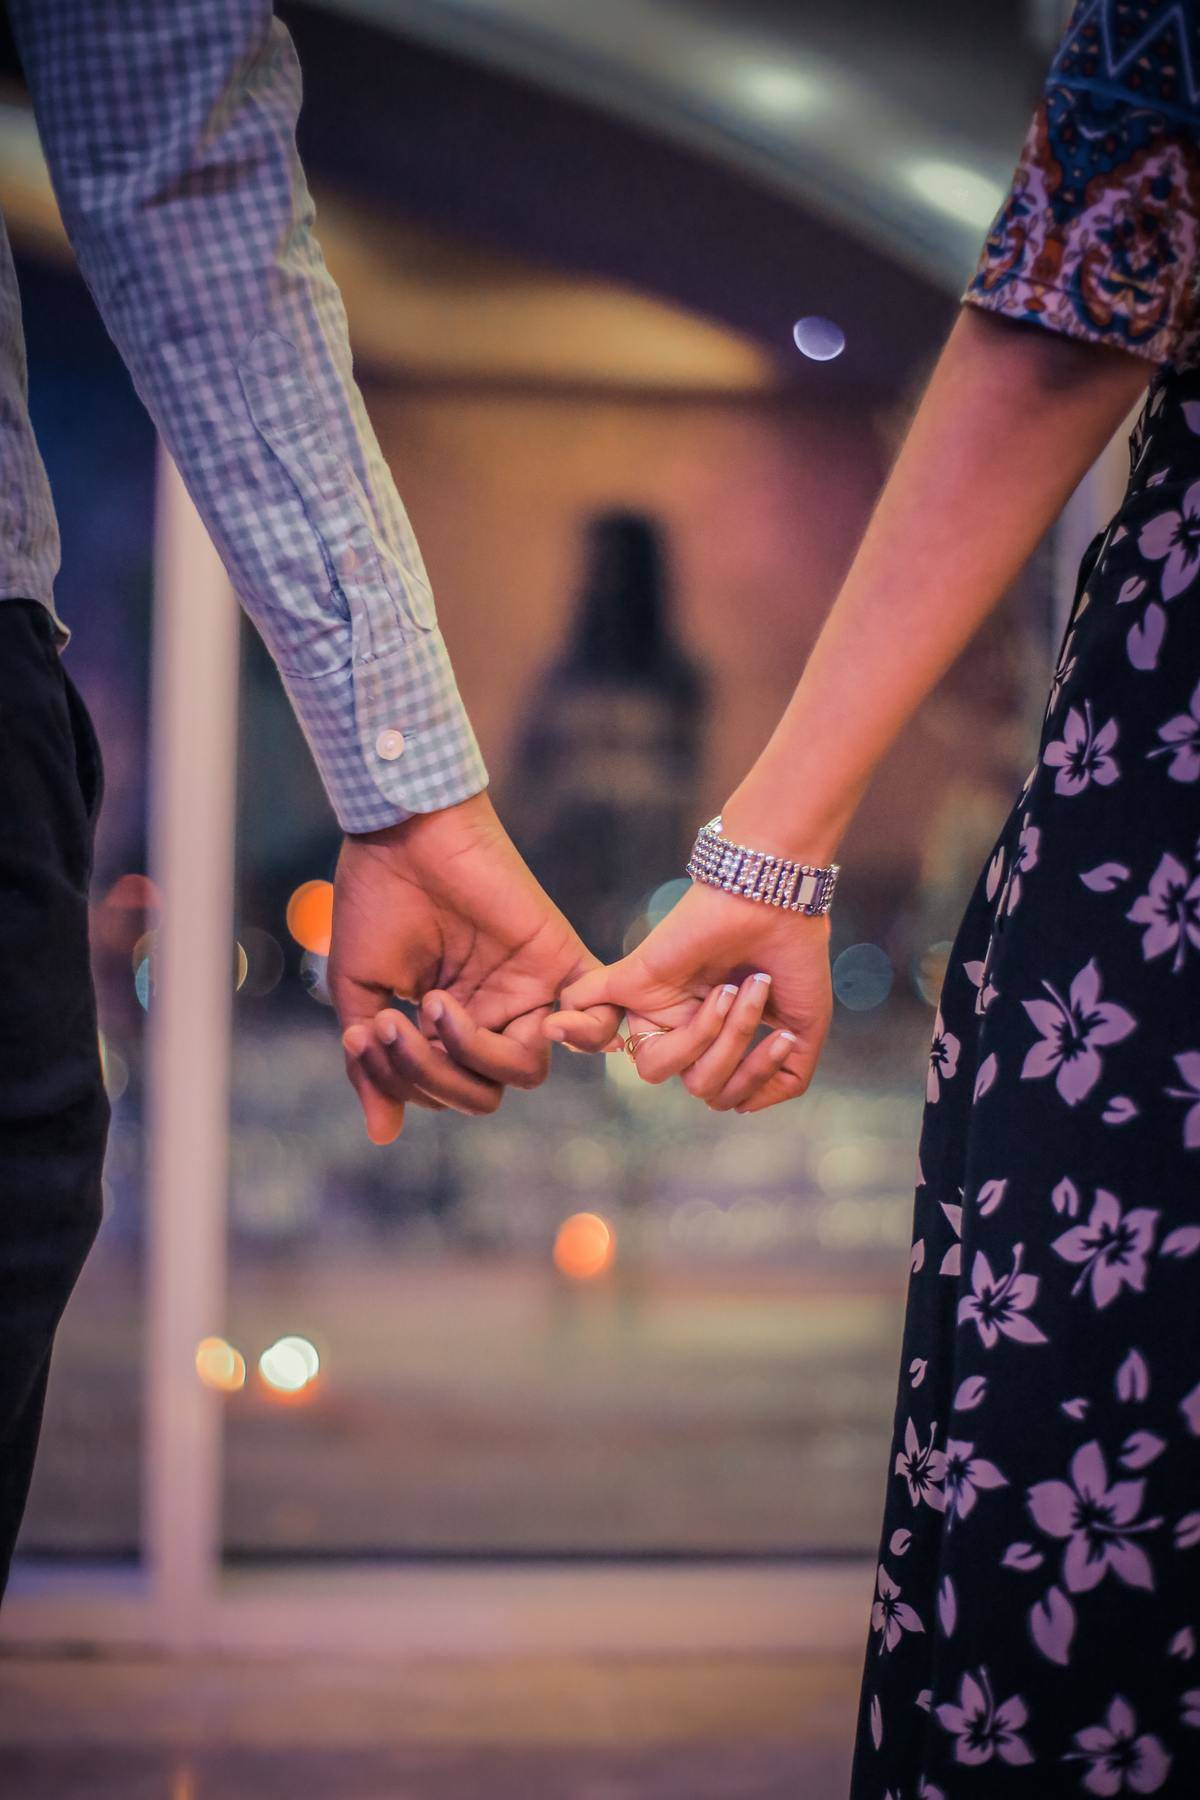 man and woman holding hands by their pinkies